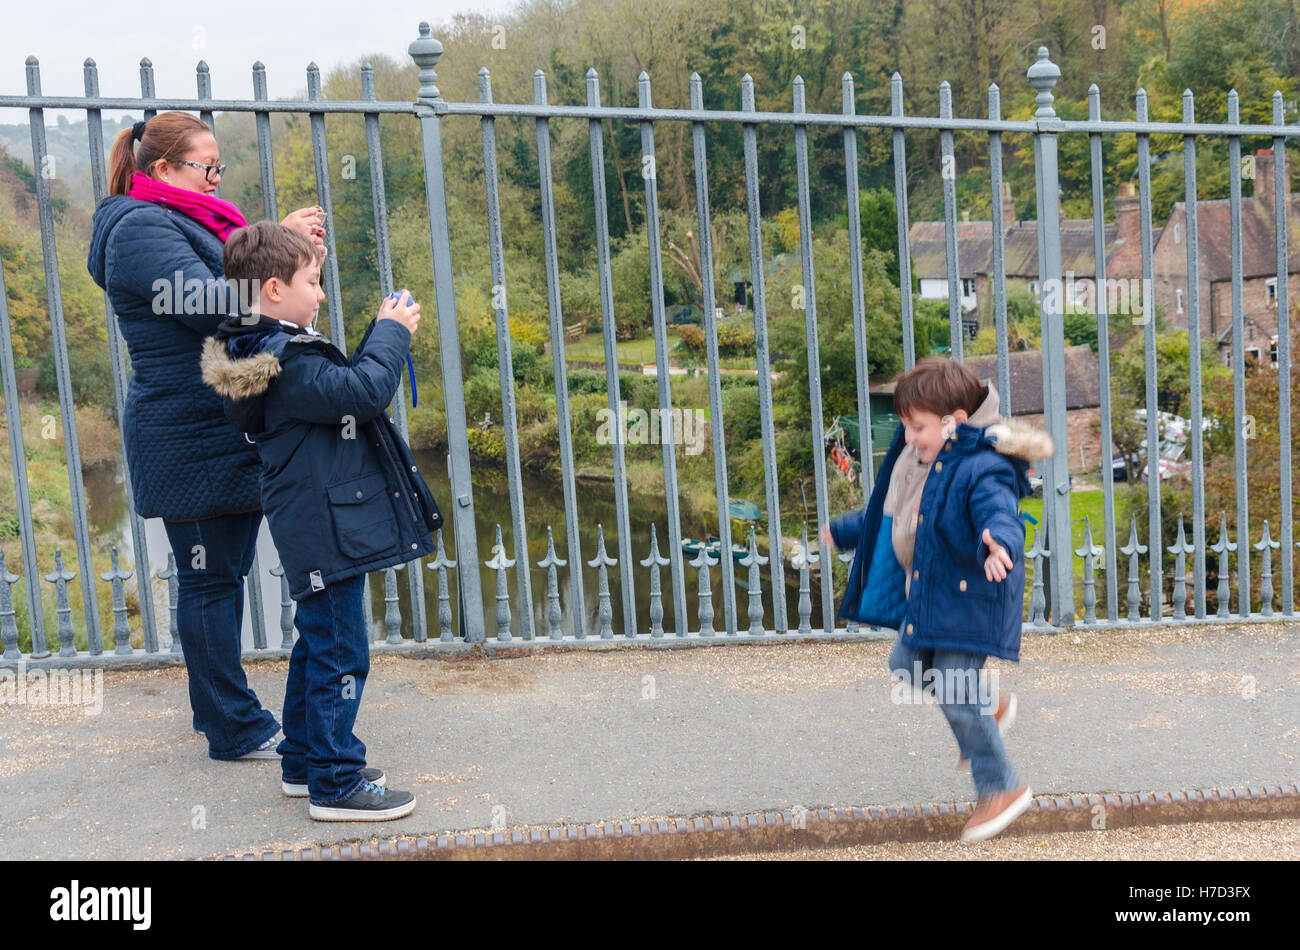 A mum takes a photo of her son doing a star jump while out on a family outing. - Stock Image